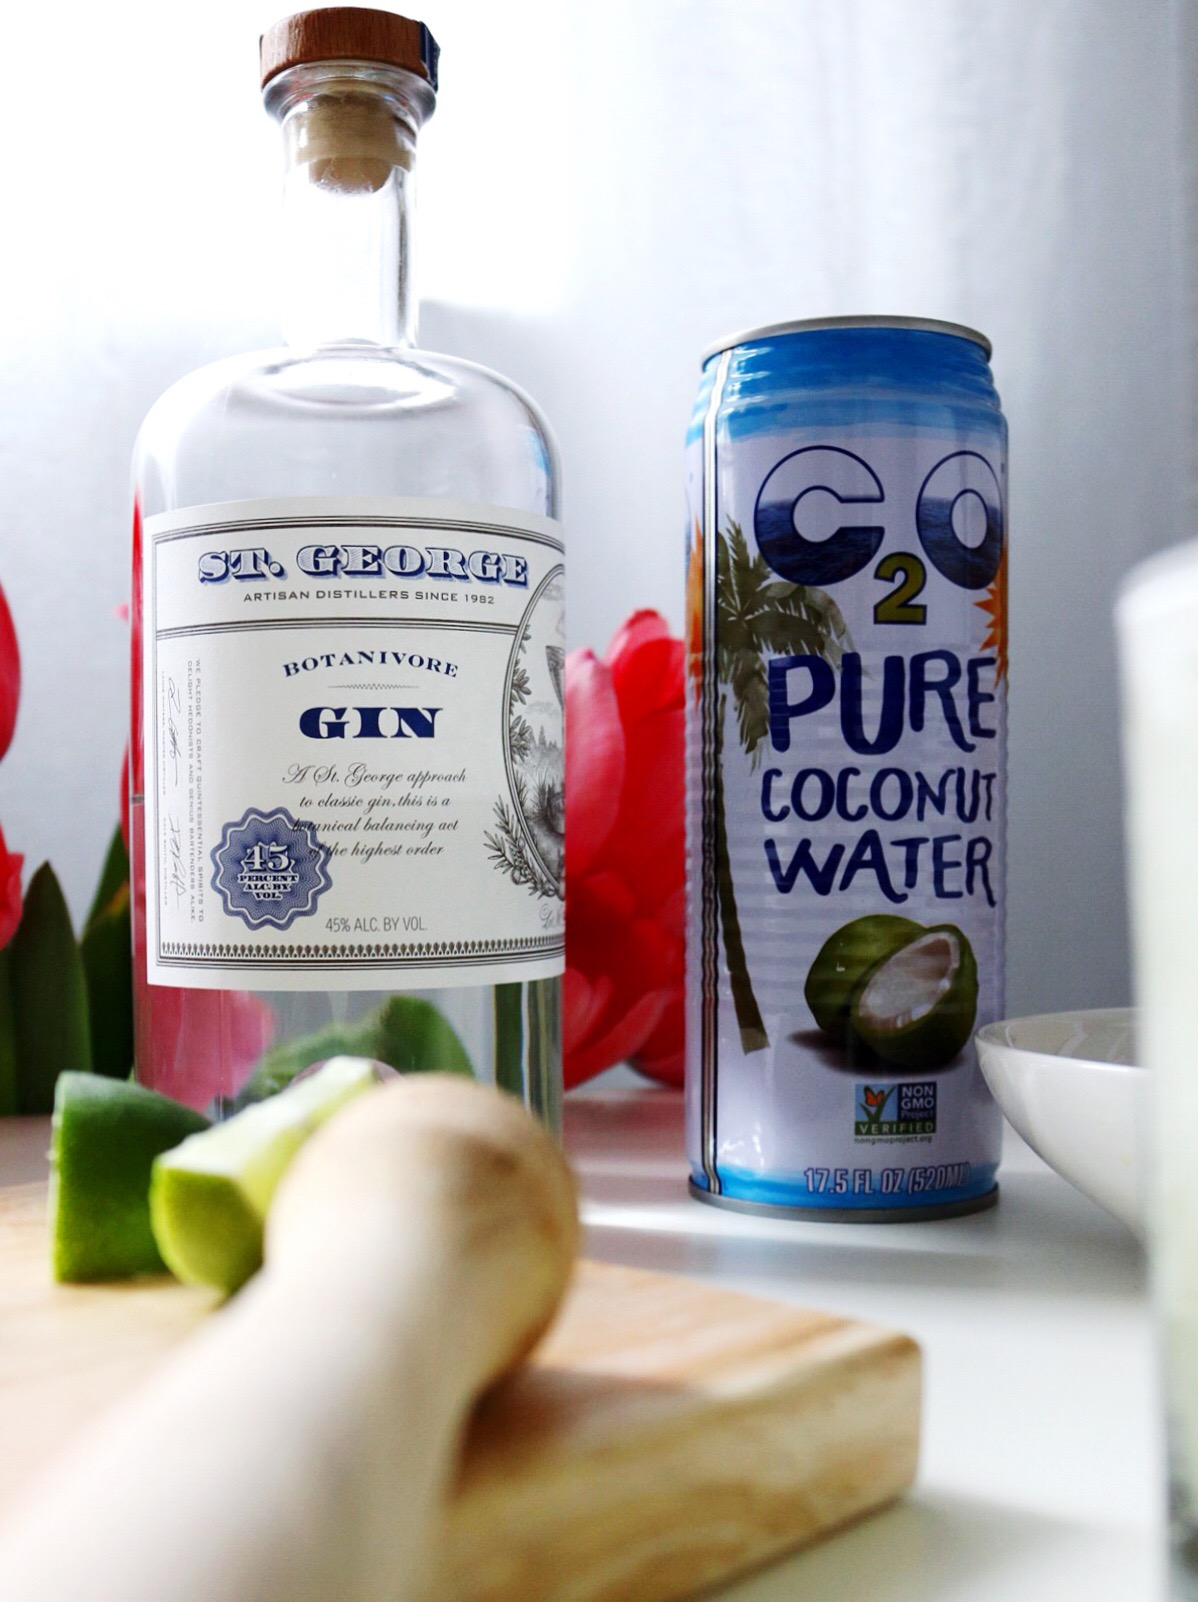 St. George Gin C20 Coconut Water Cocktail Muddled Lime and Mint